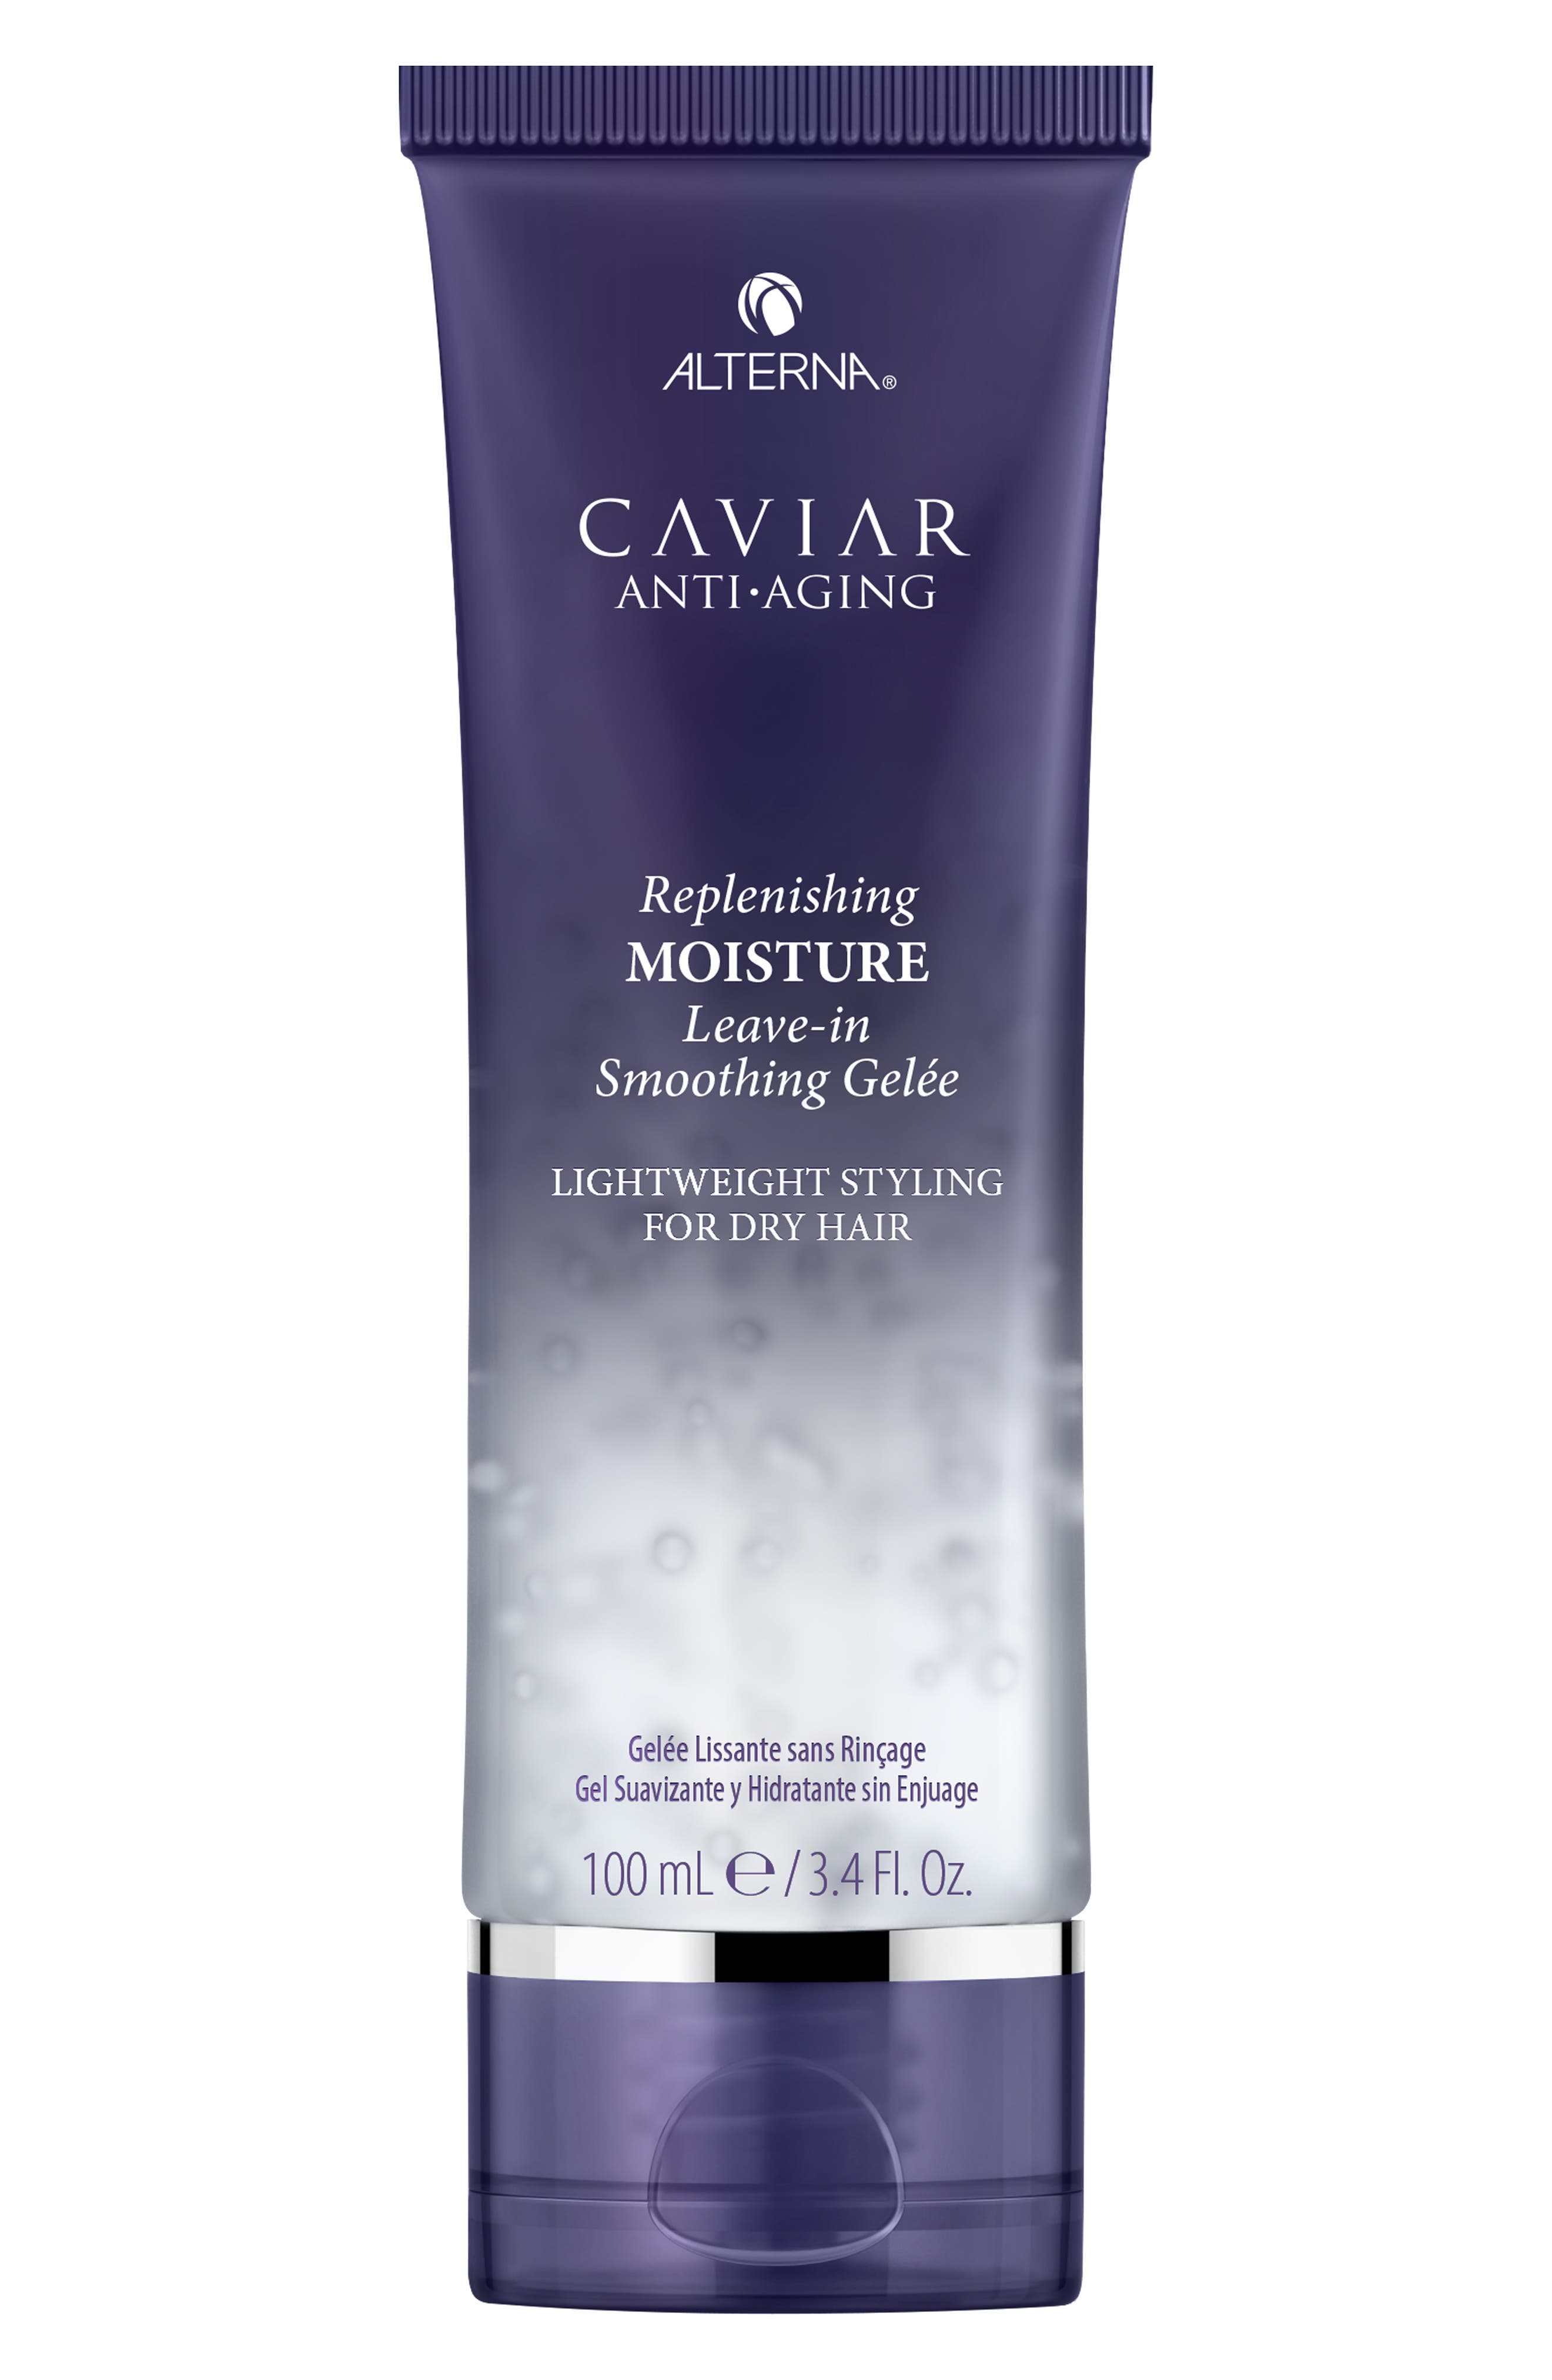 Caviar Anti-Aging Replenishing Moisture Leave-in Smoothing Gelée,                         Main,                         color, NO COLOR